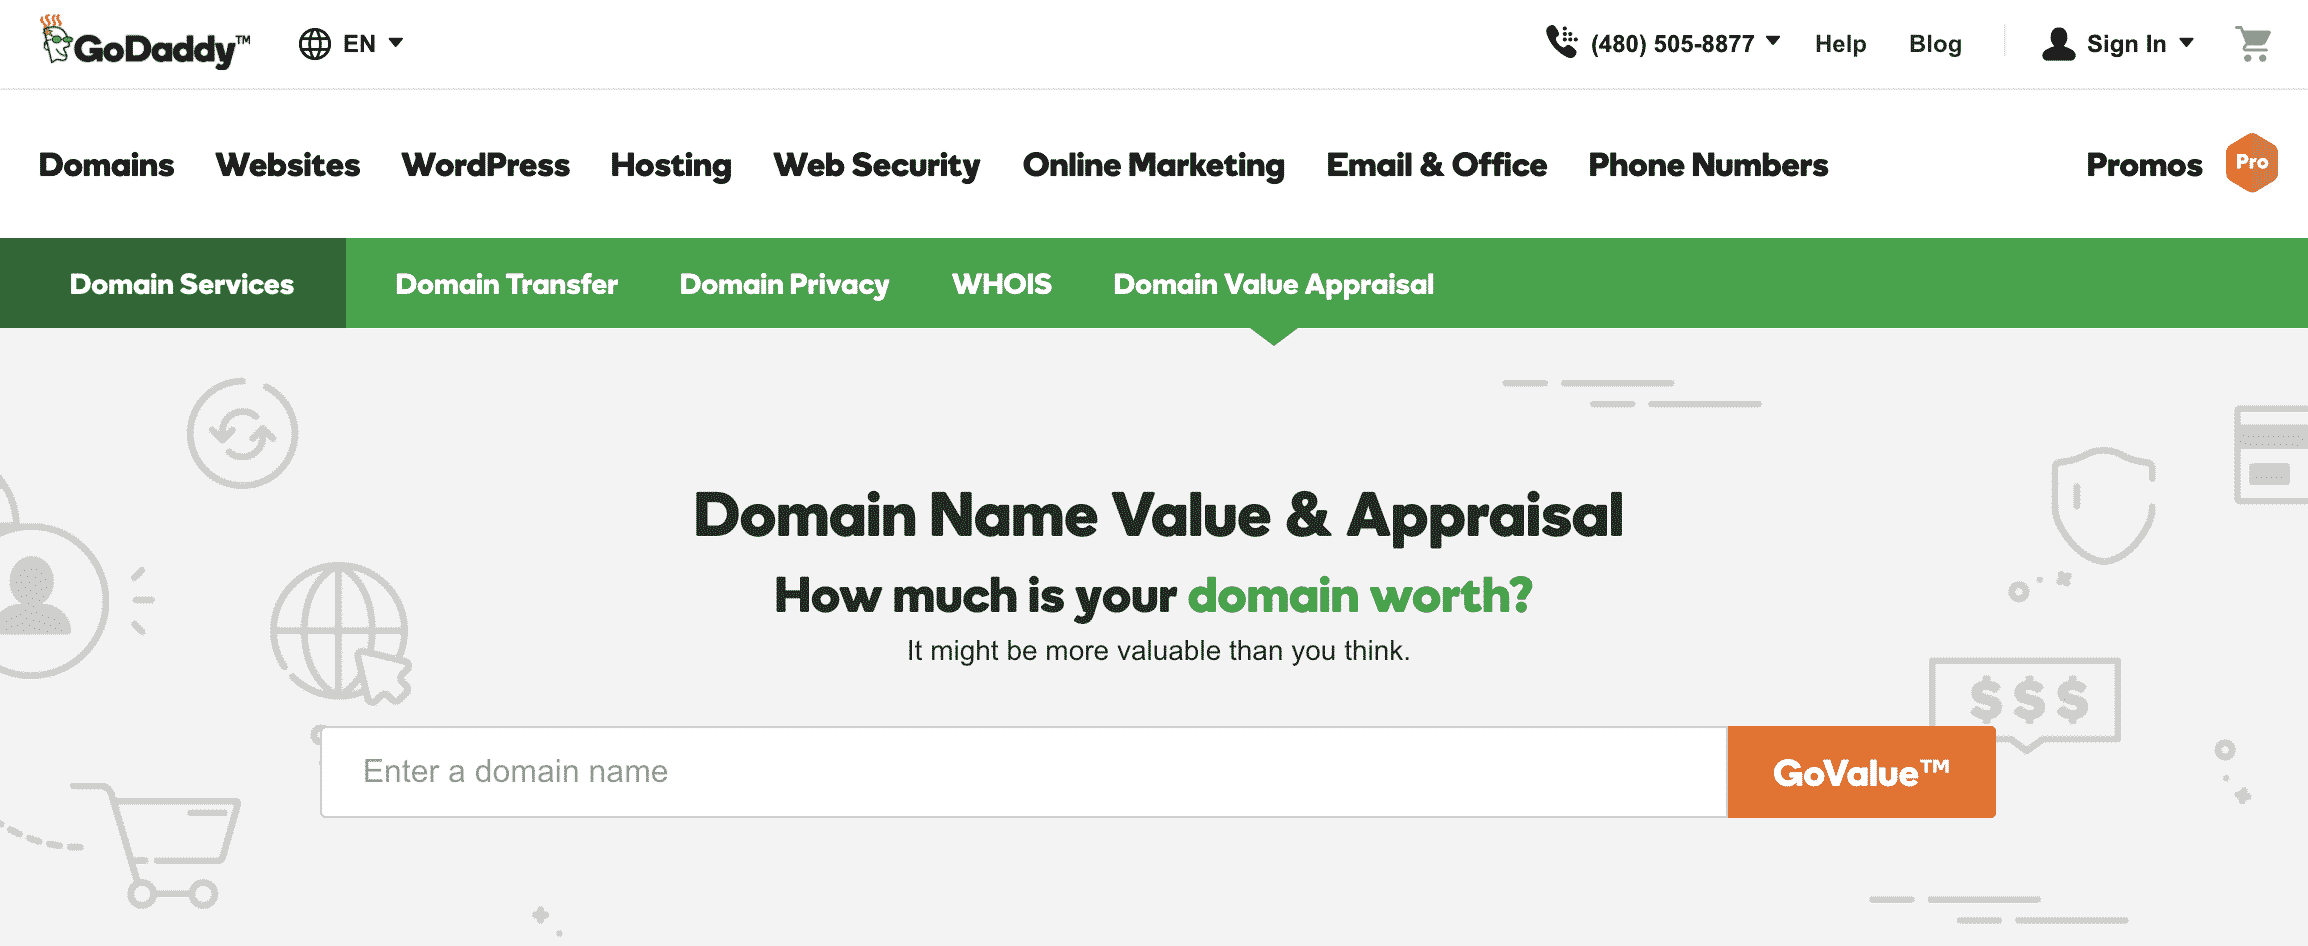 GoDaddy Domain Name Appraisal Tool